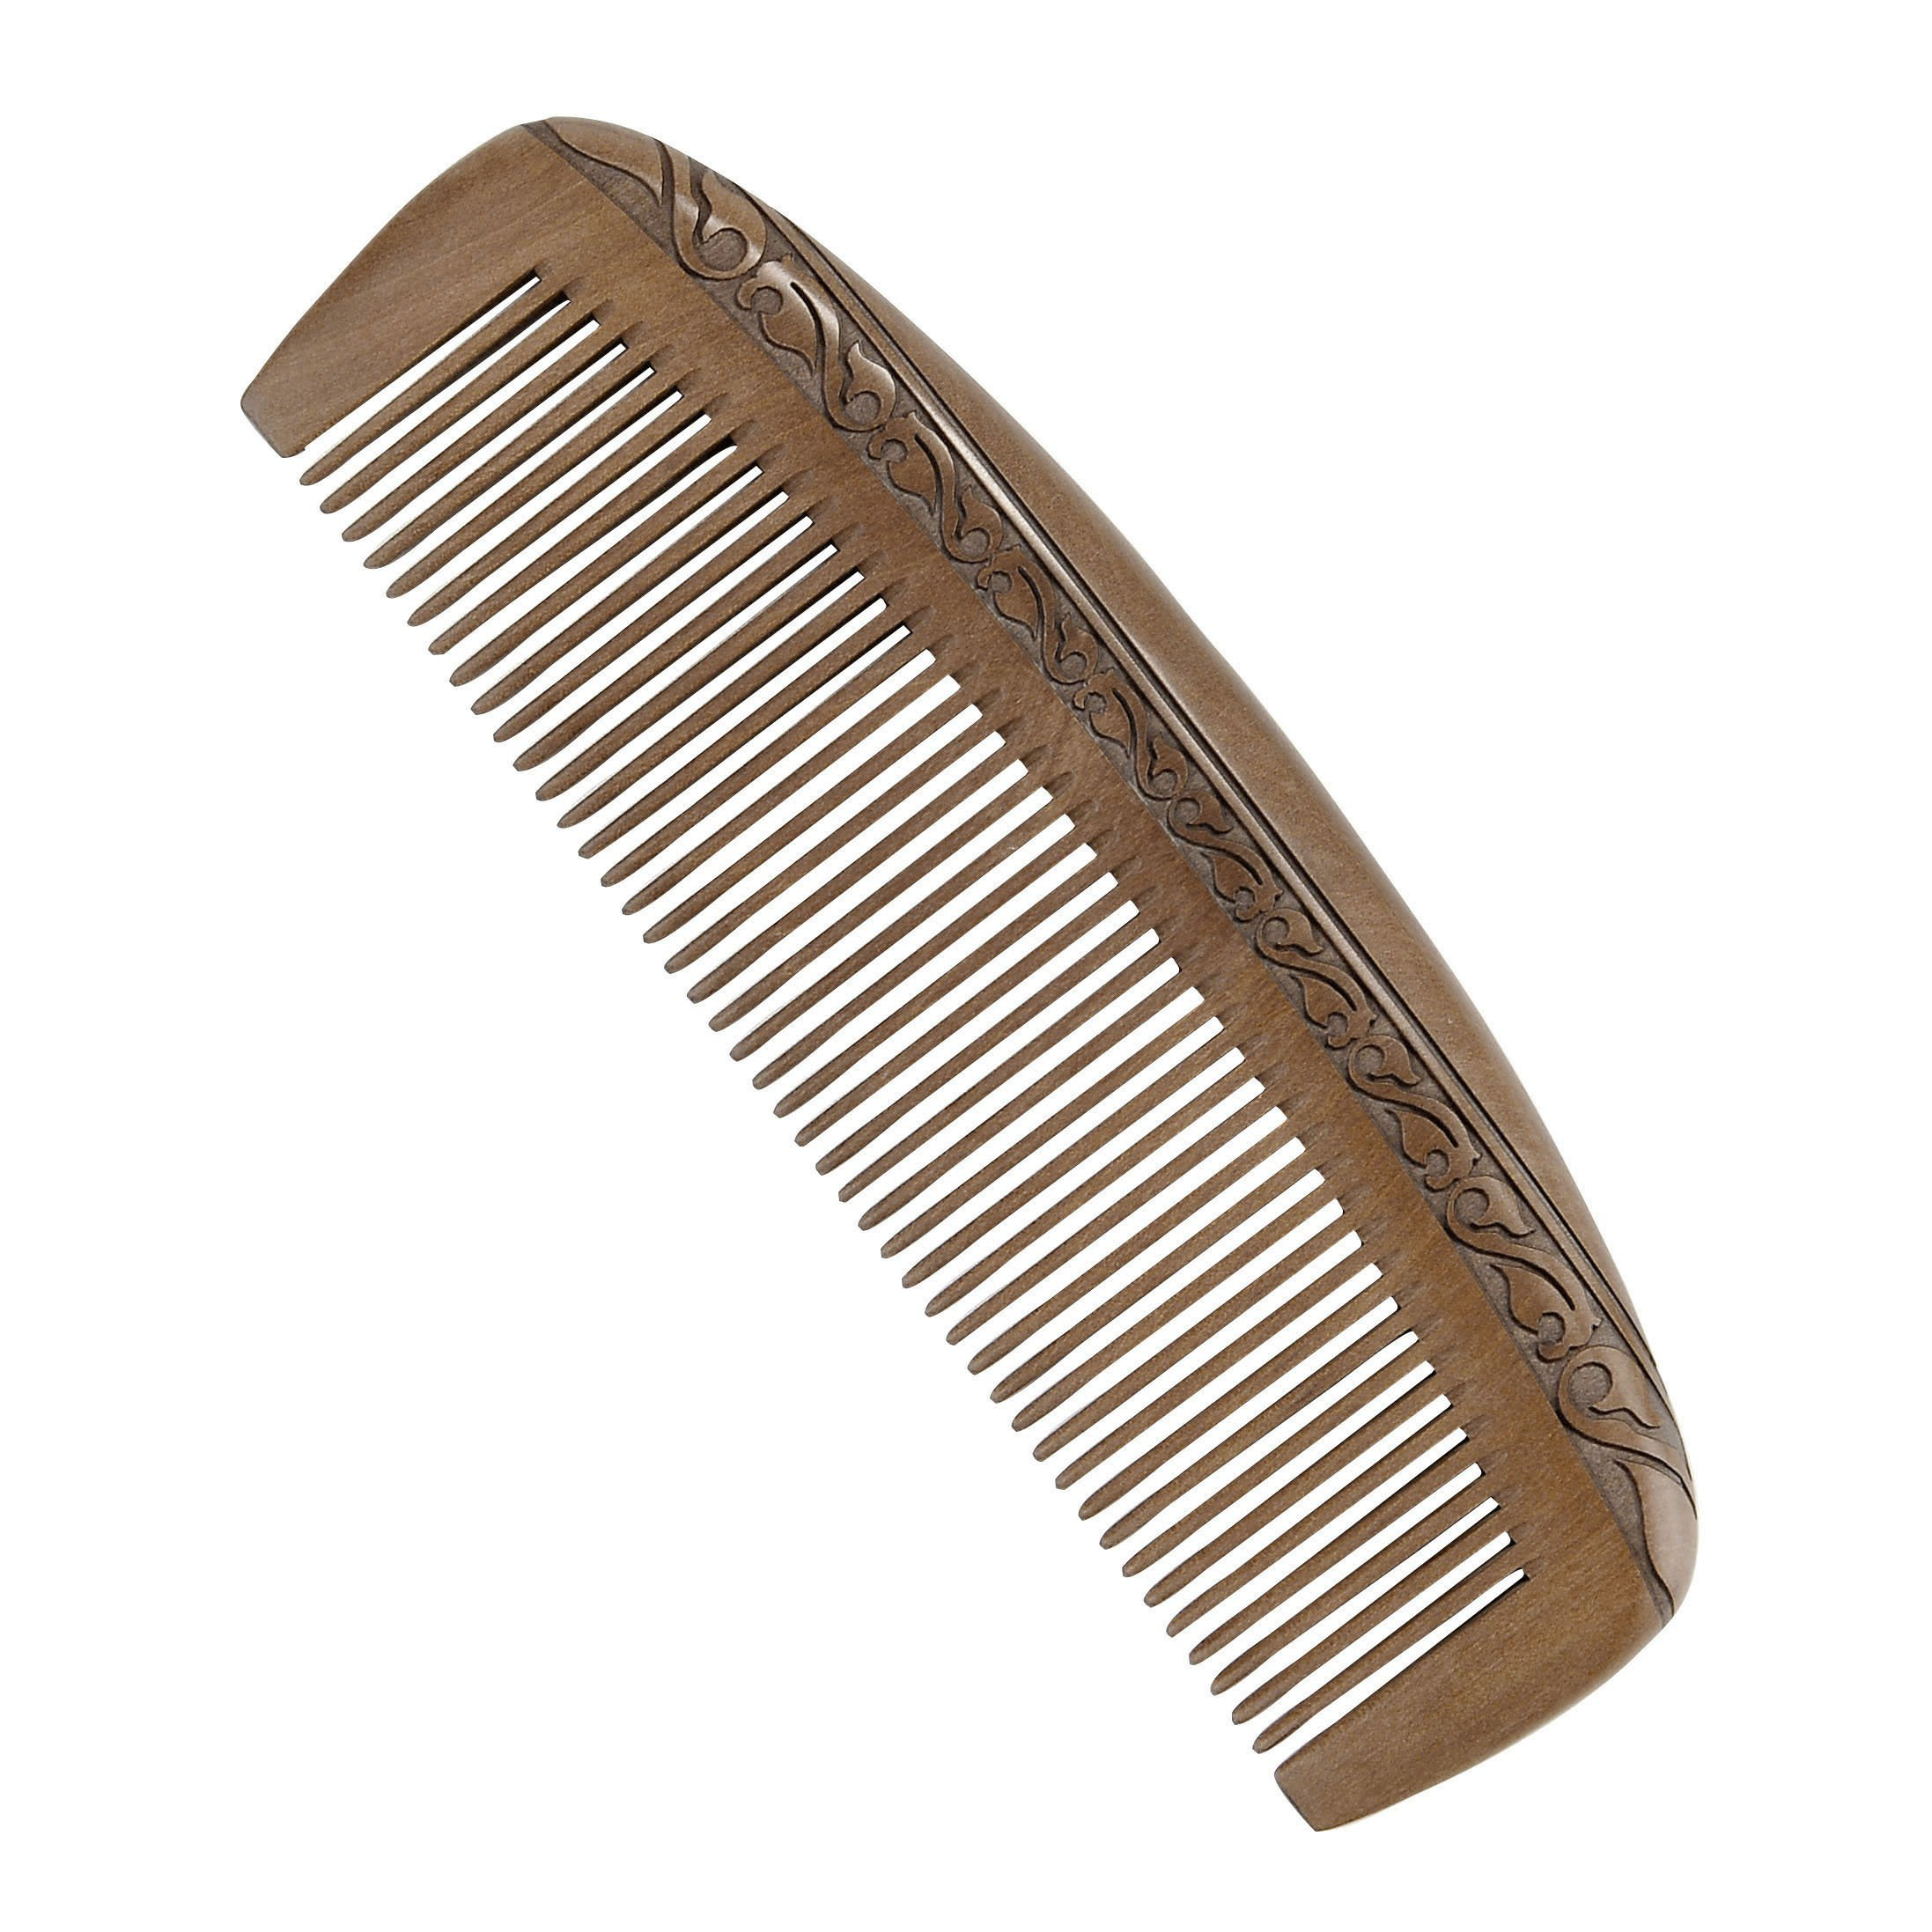 CCbeauty Handmade Peach Wood Comb Anti-Static Moon Shaped Hair Care Comb and Rounded Handle Wooden Comb Fine Tooth Comb Set